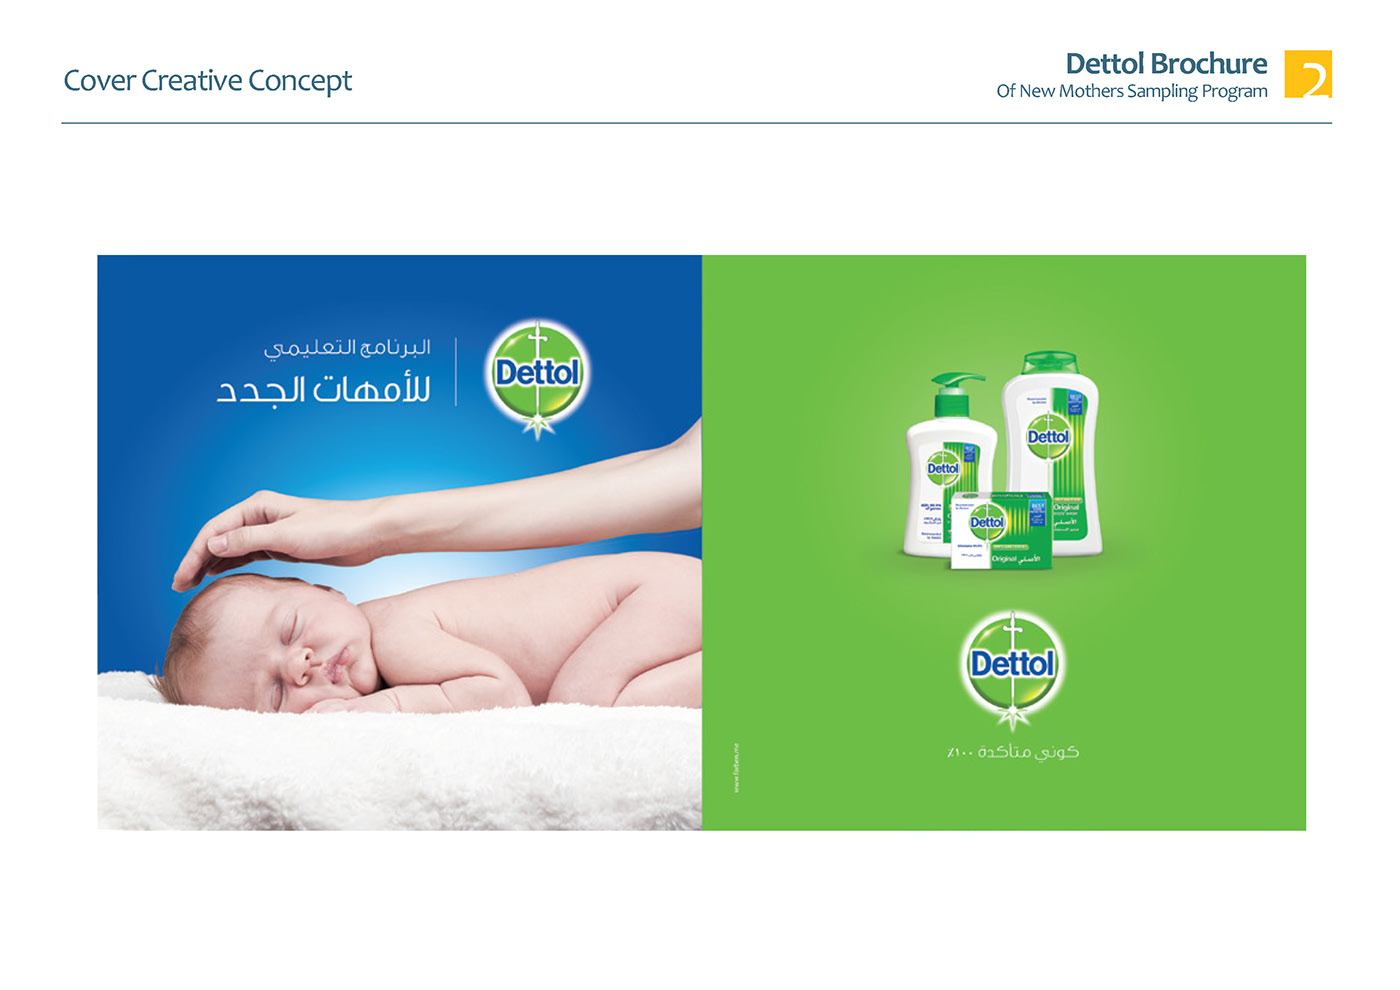 dettol project Project on dettol strategies and objectives ± reckitt benckiser's  objective is to generate above industry average profitable growth by: ‡ focusing  on.